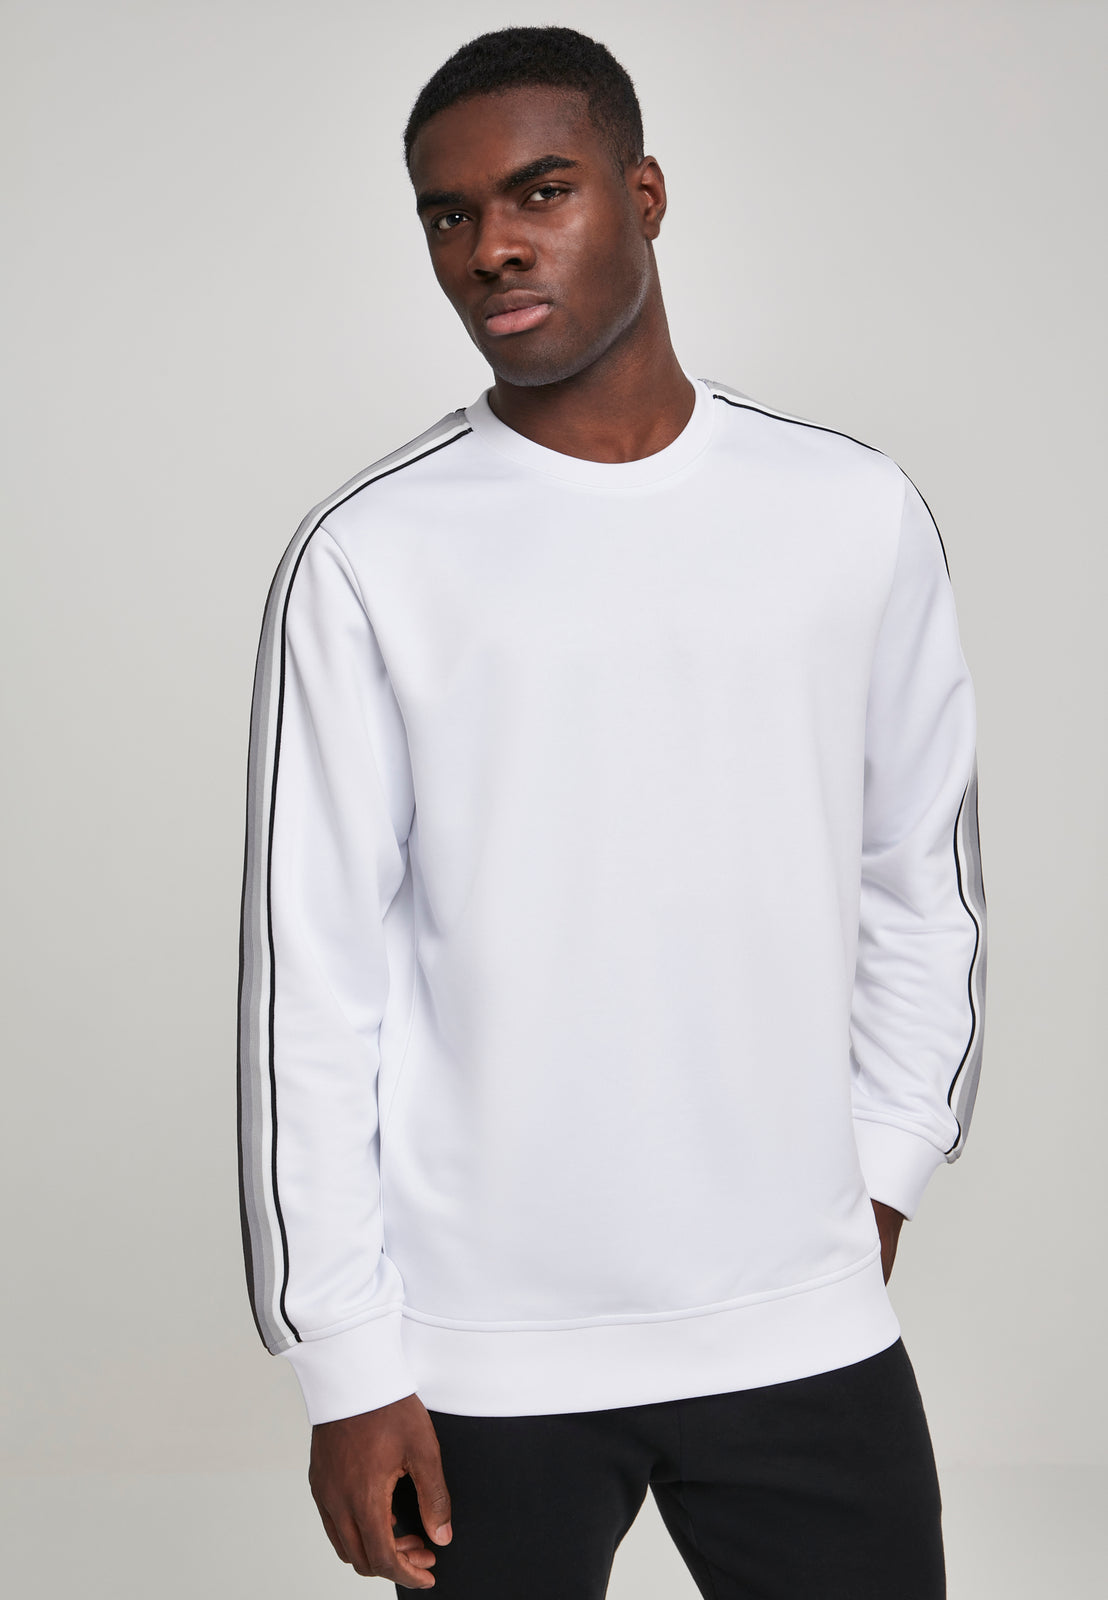 Sleeve Taped Crewneck wht/gry